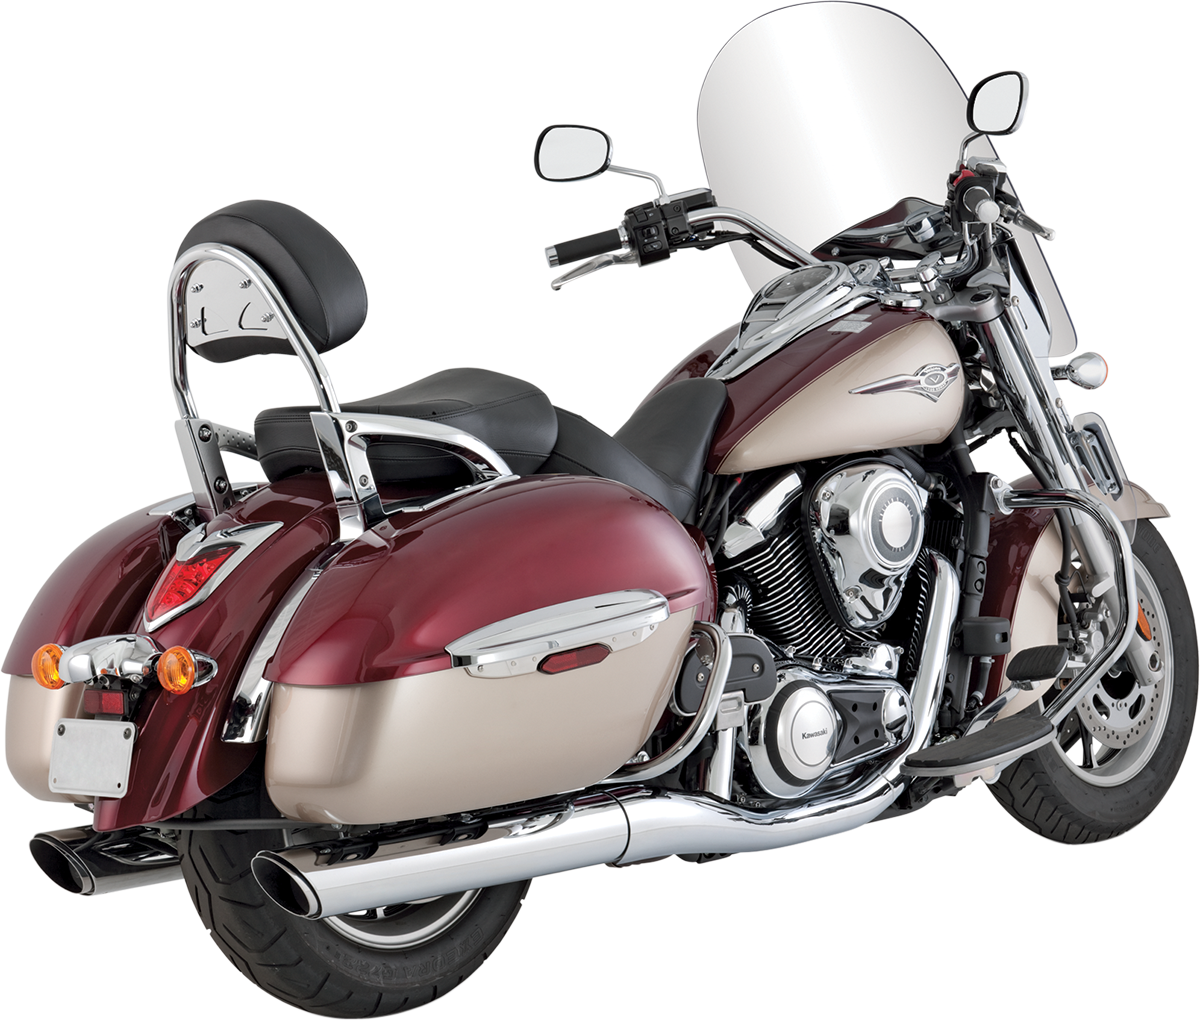 Vance & Hines Chrome 2-2 Twin Slash Mufflers for 09-14 Kawasaki Vulcan VN 1700